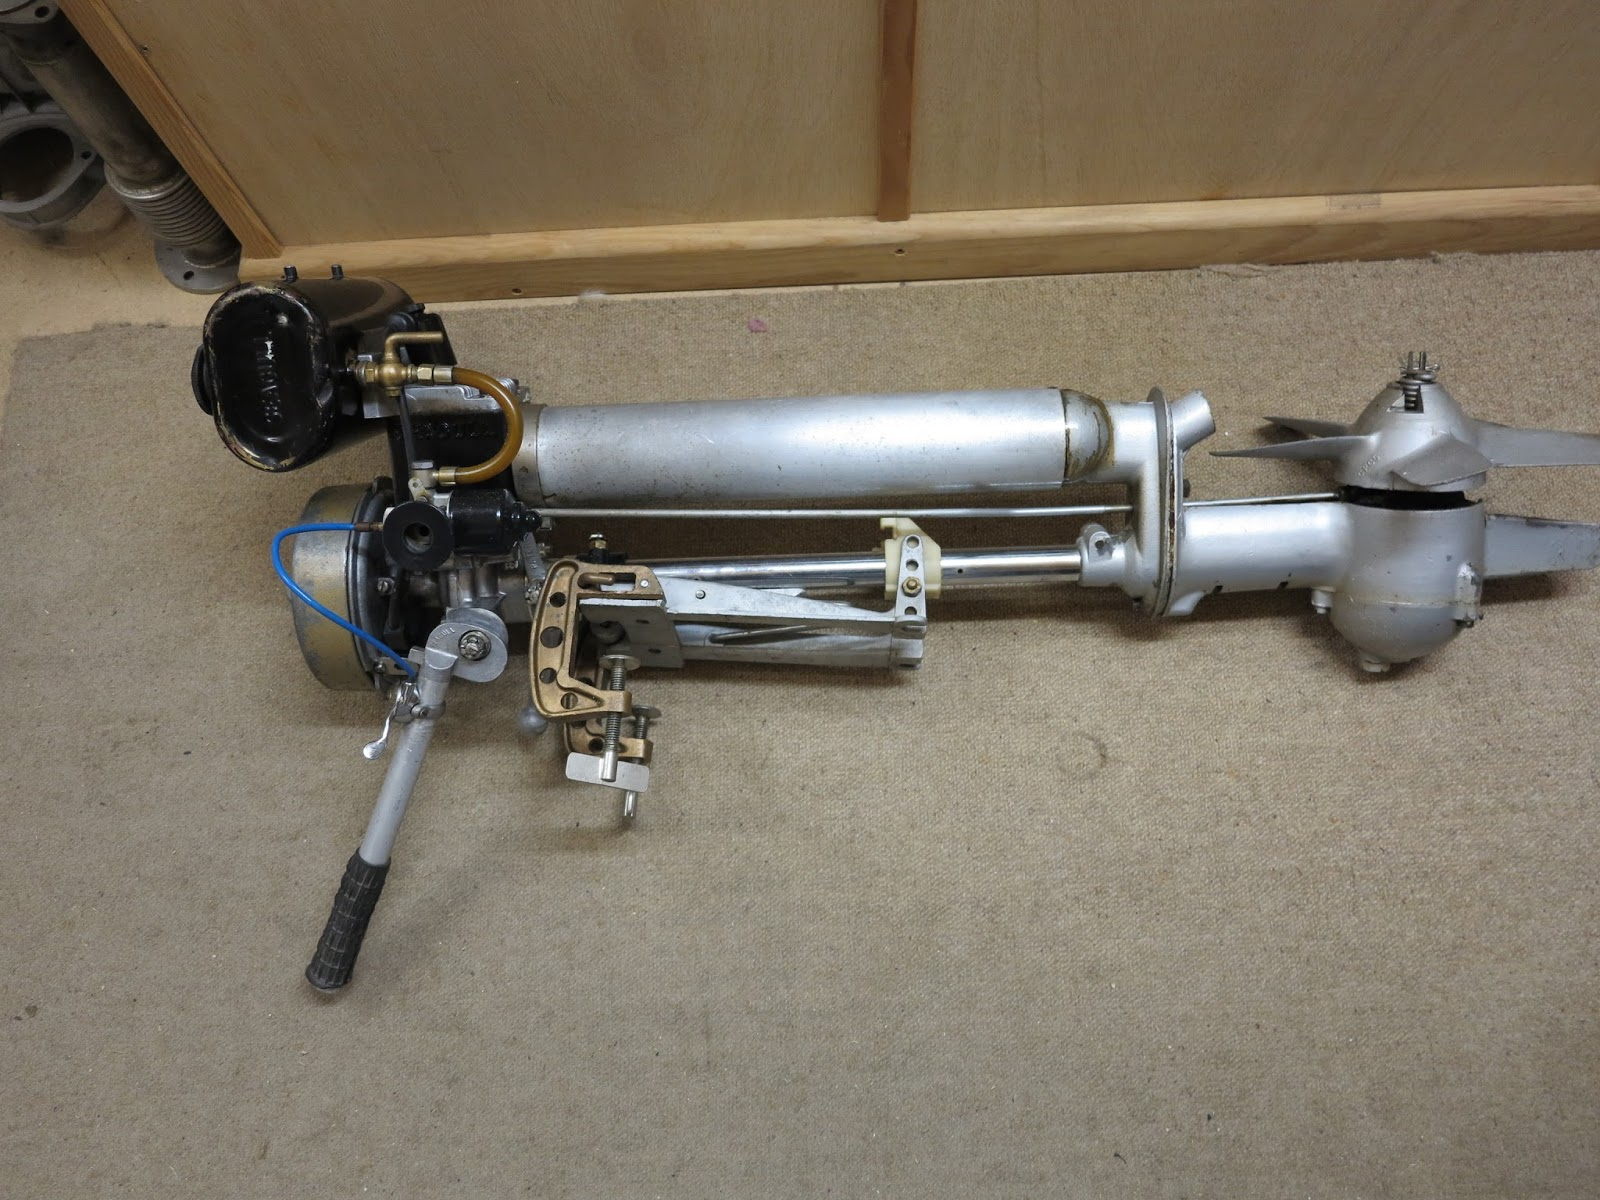 Ckd boats roy mc bride british seagull outboard motor for Seagull outboard motor value